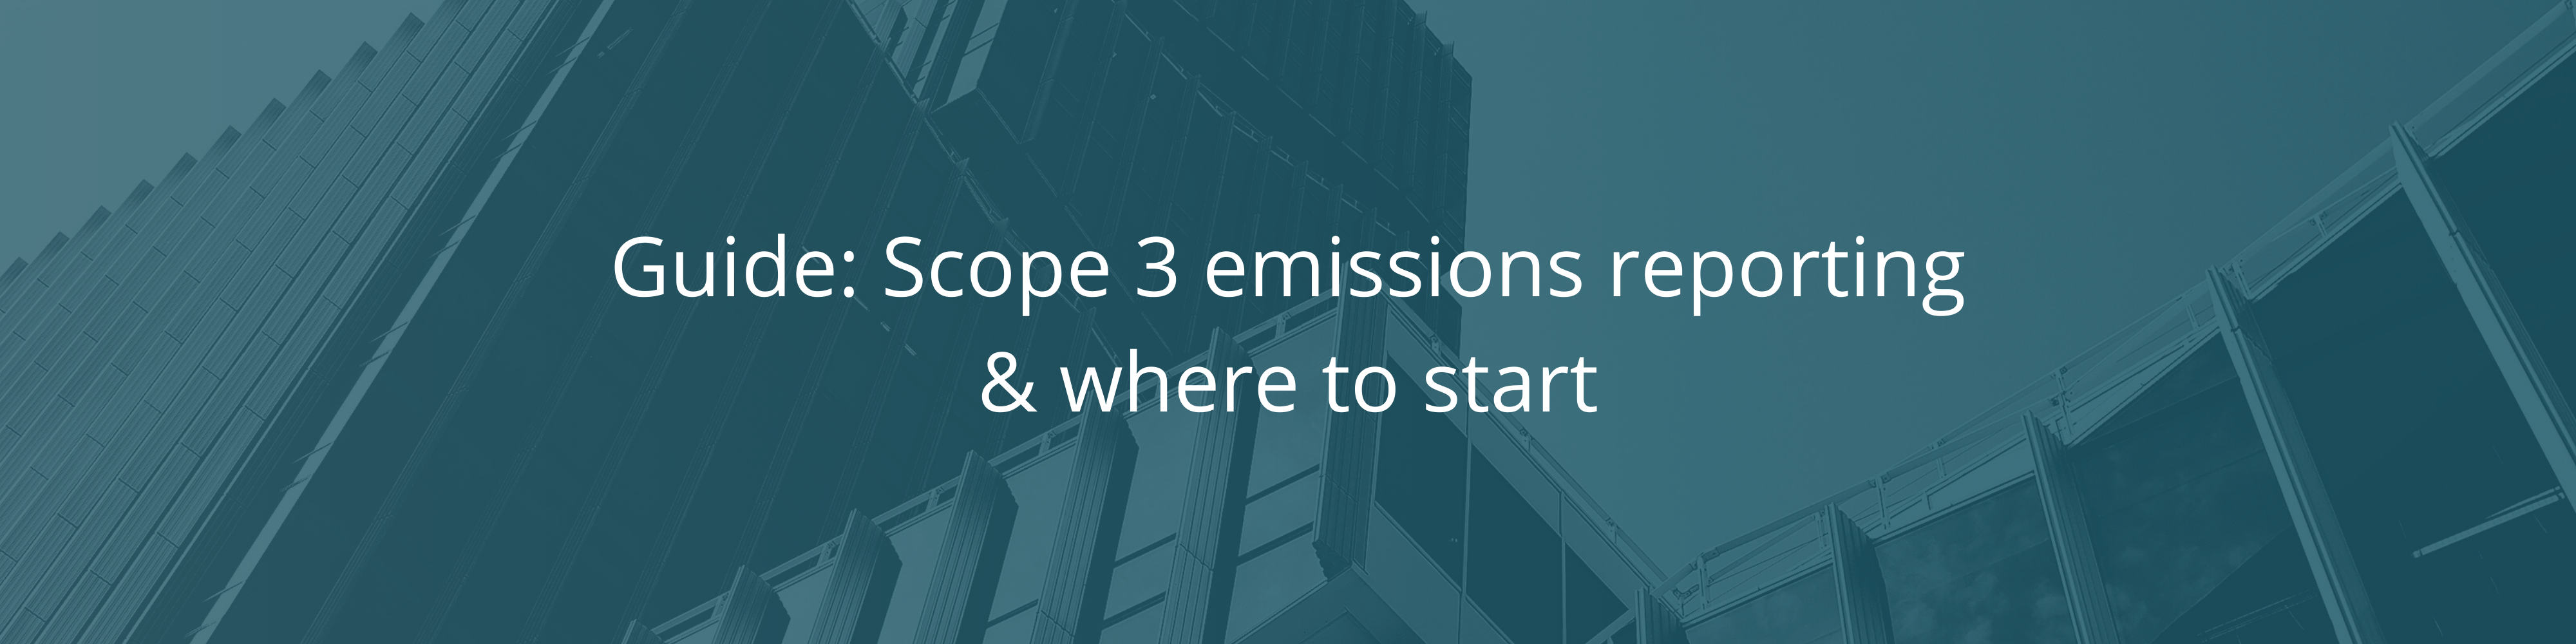 Scope 3 emissions reporting & where to start